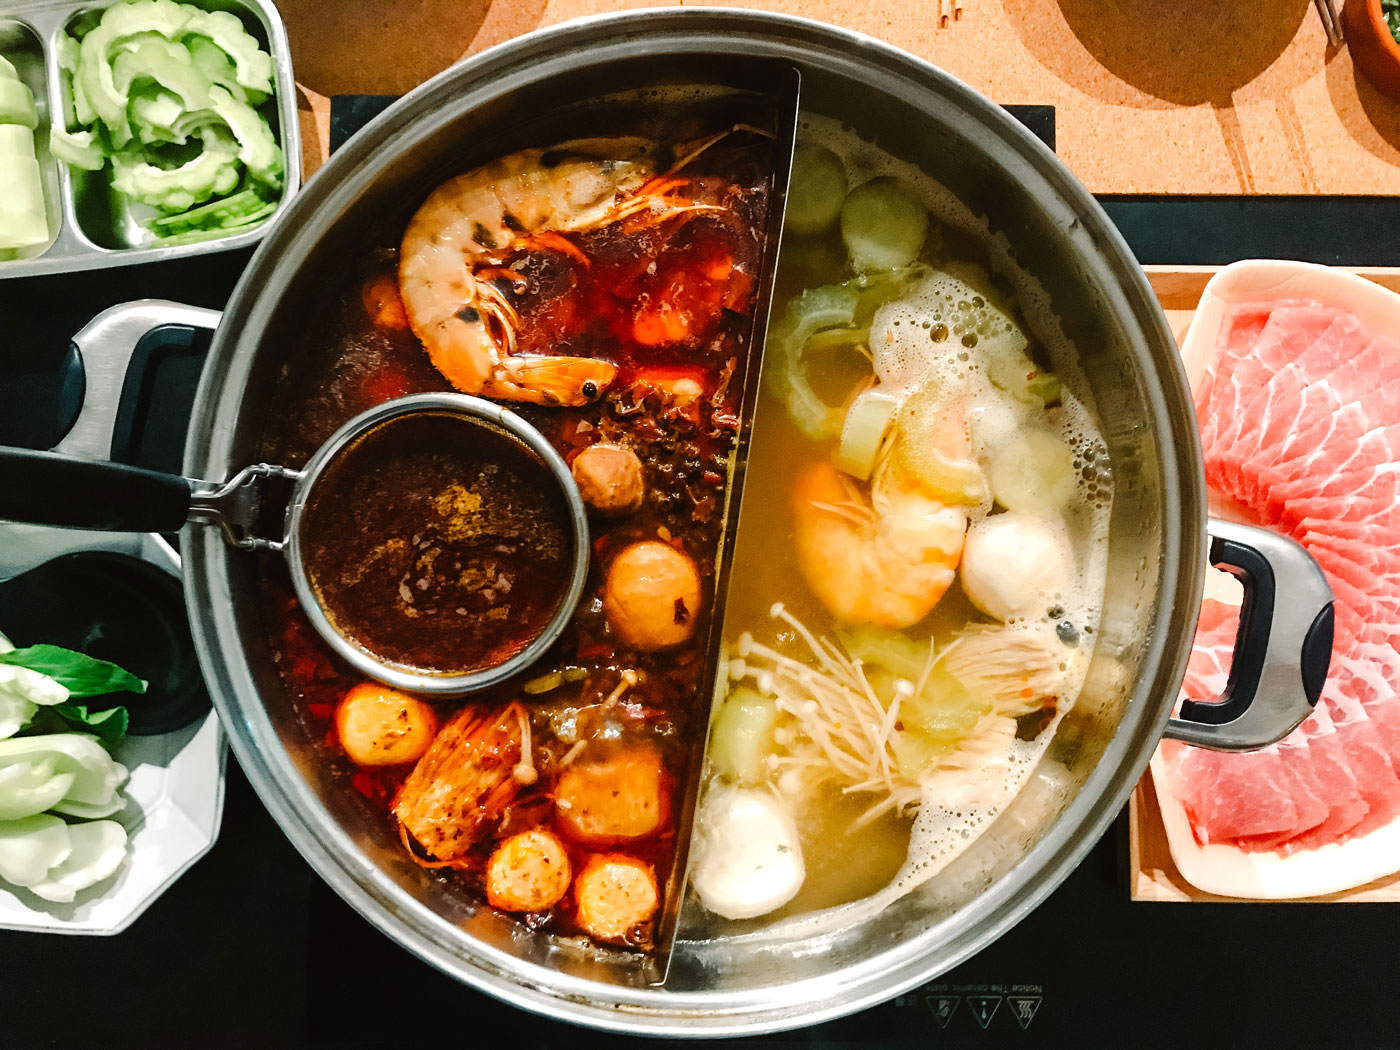 A steamboat, or hotpot, resting on a table with various raw ingredients.